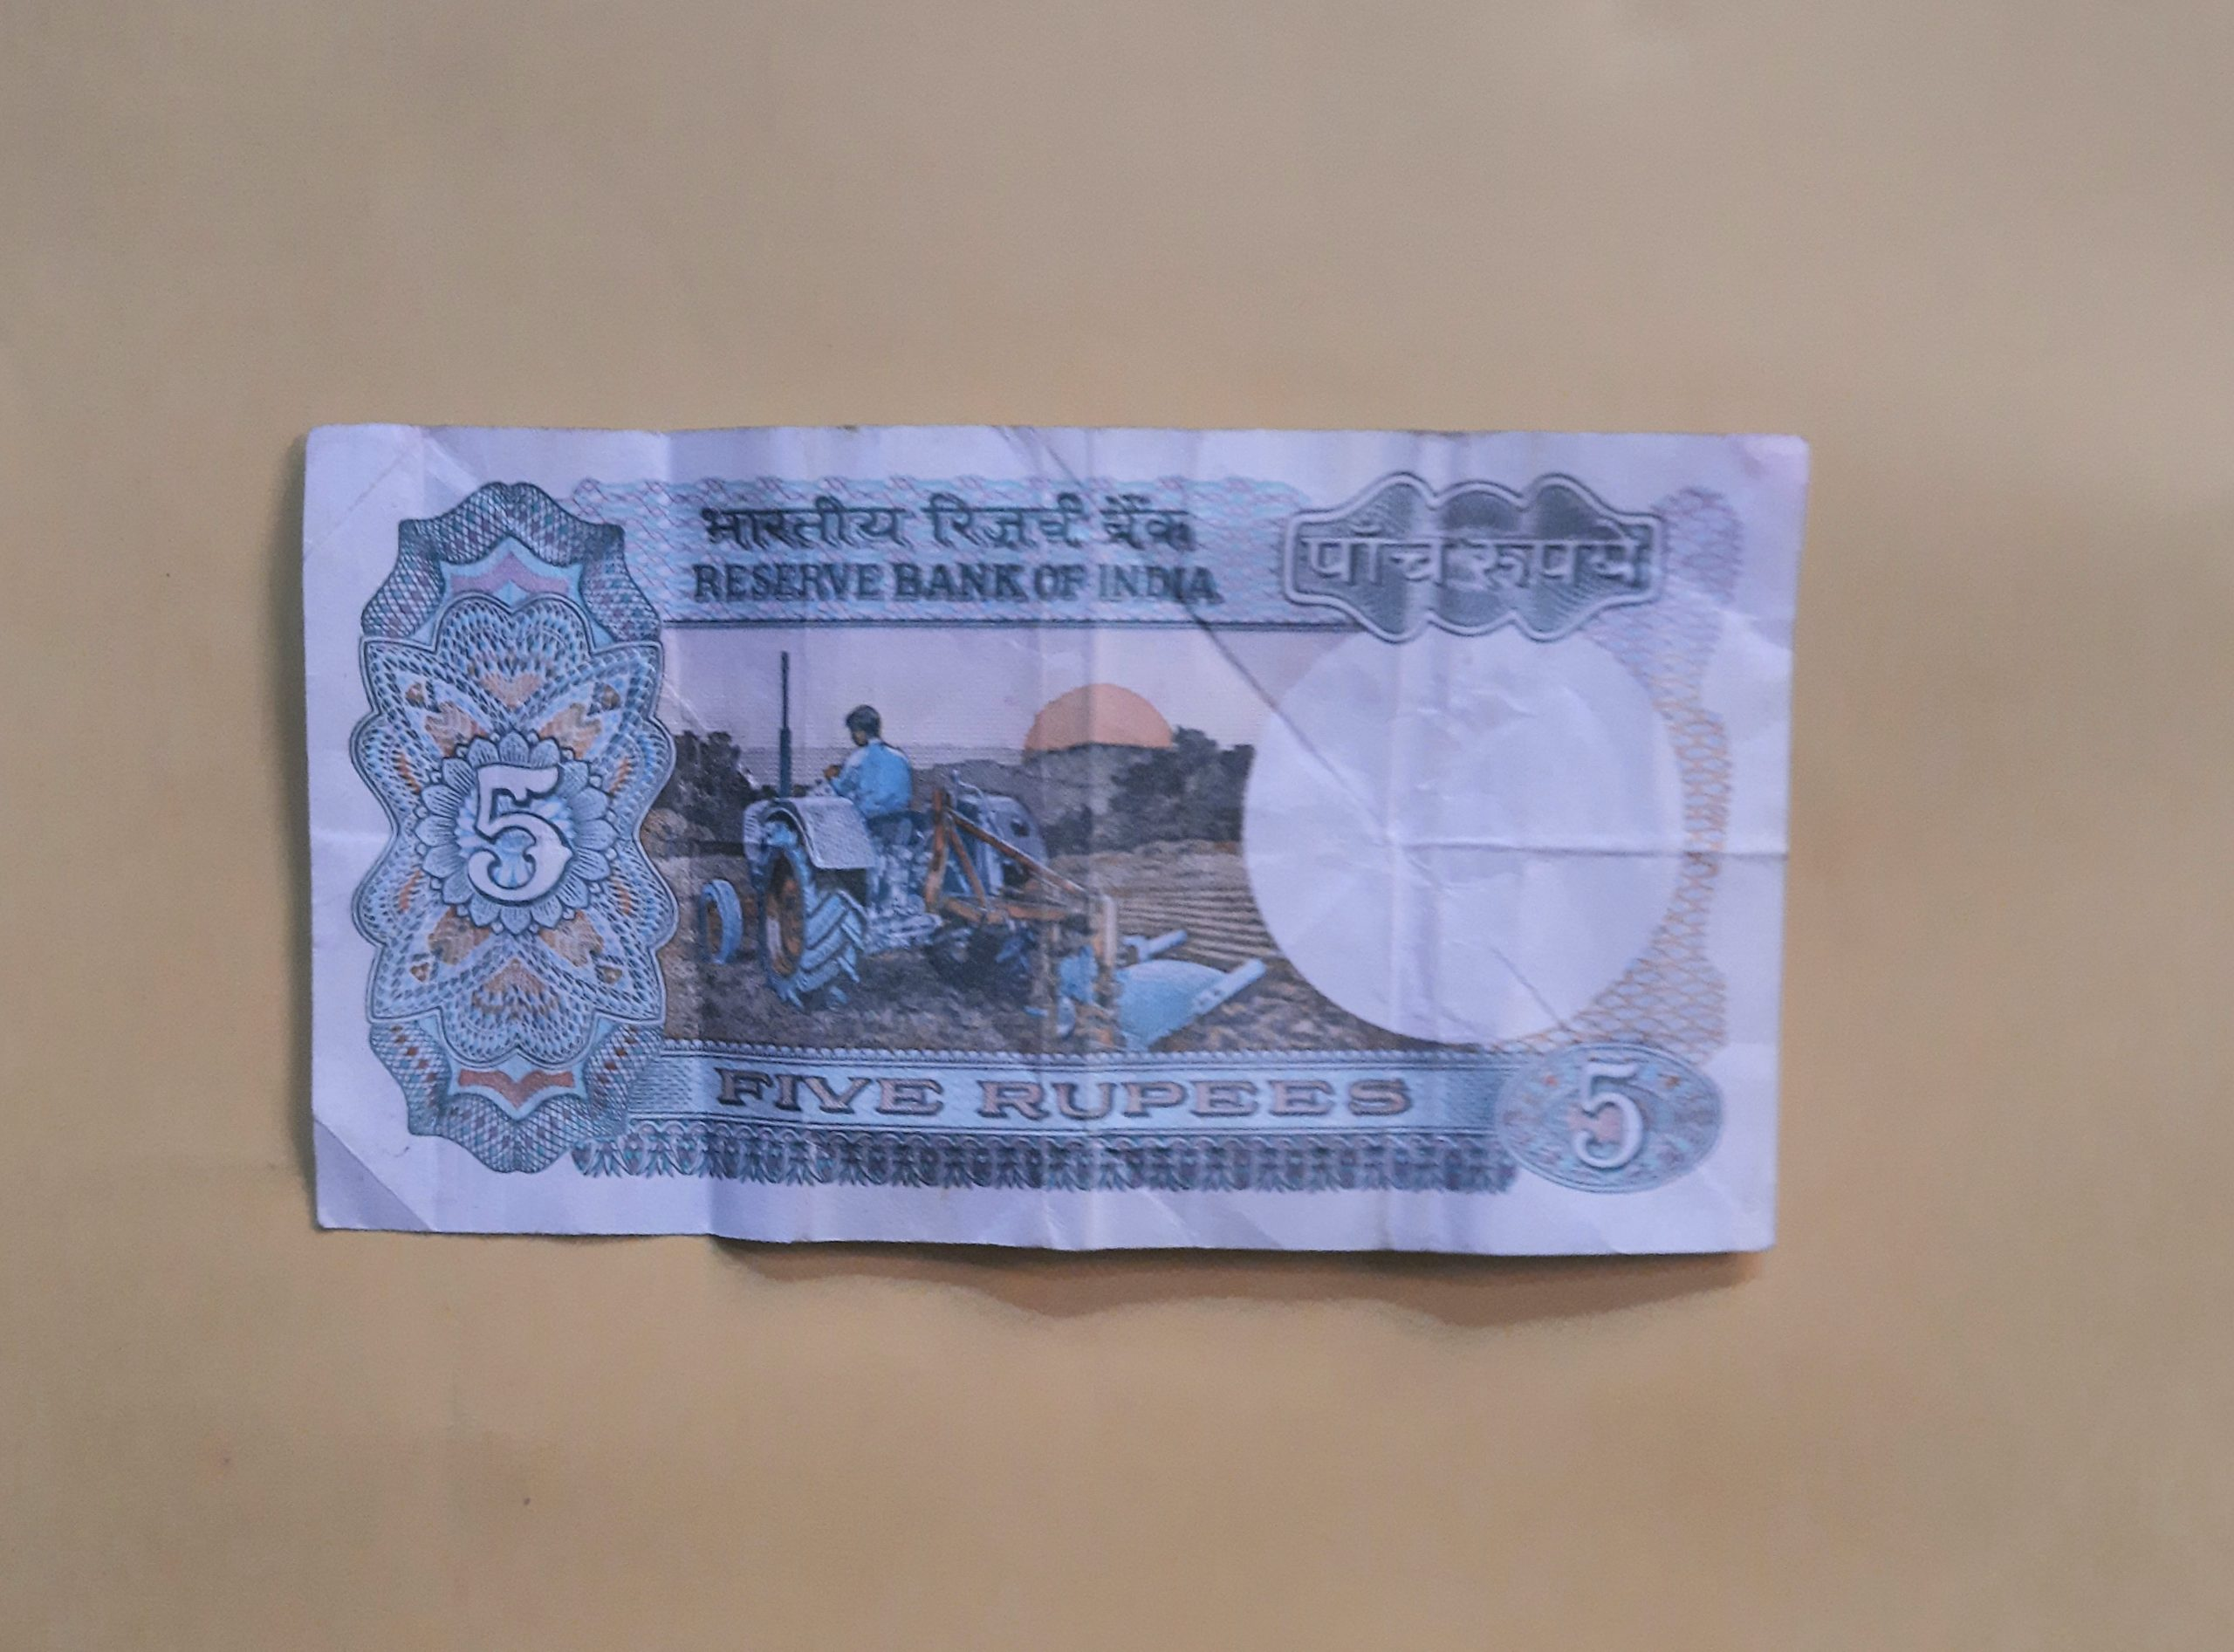 The Indian five rupees old currency